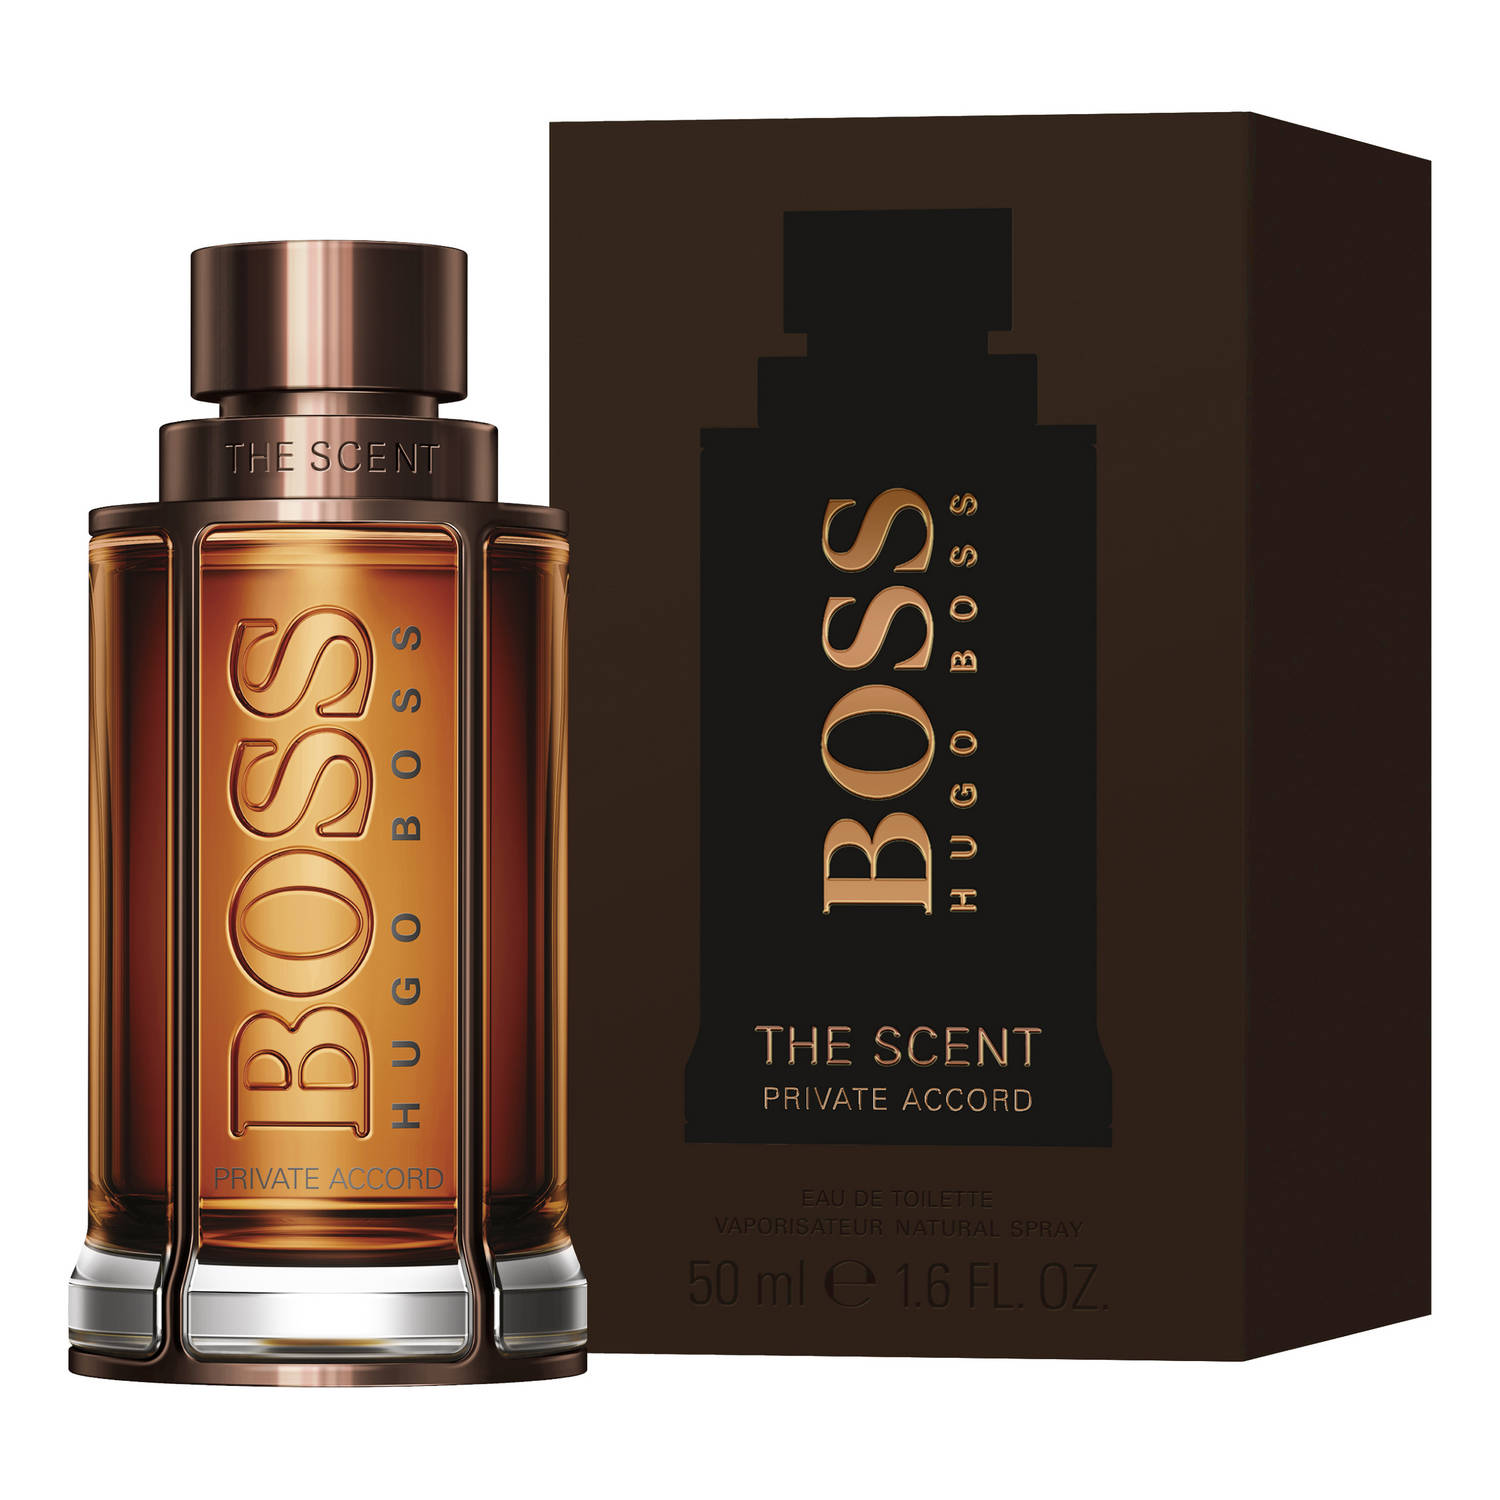 Zapach męski Hugo Boss The Scent Private Accord / Douglas, 319 zł